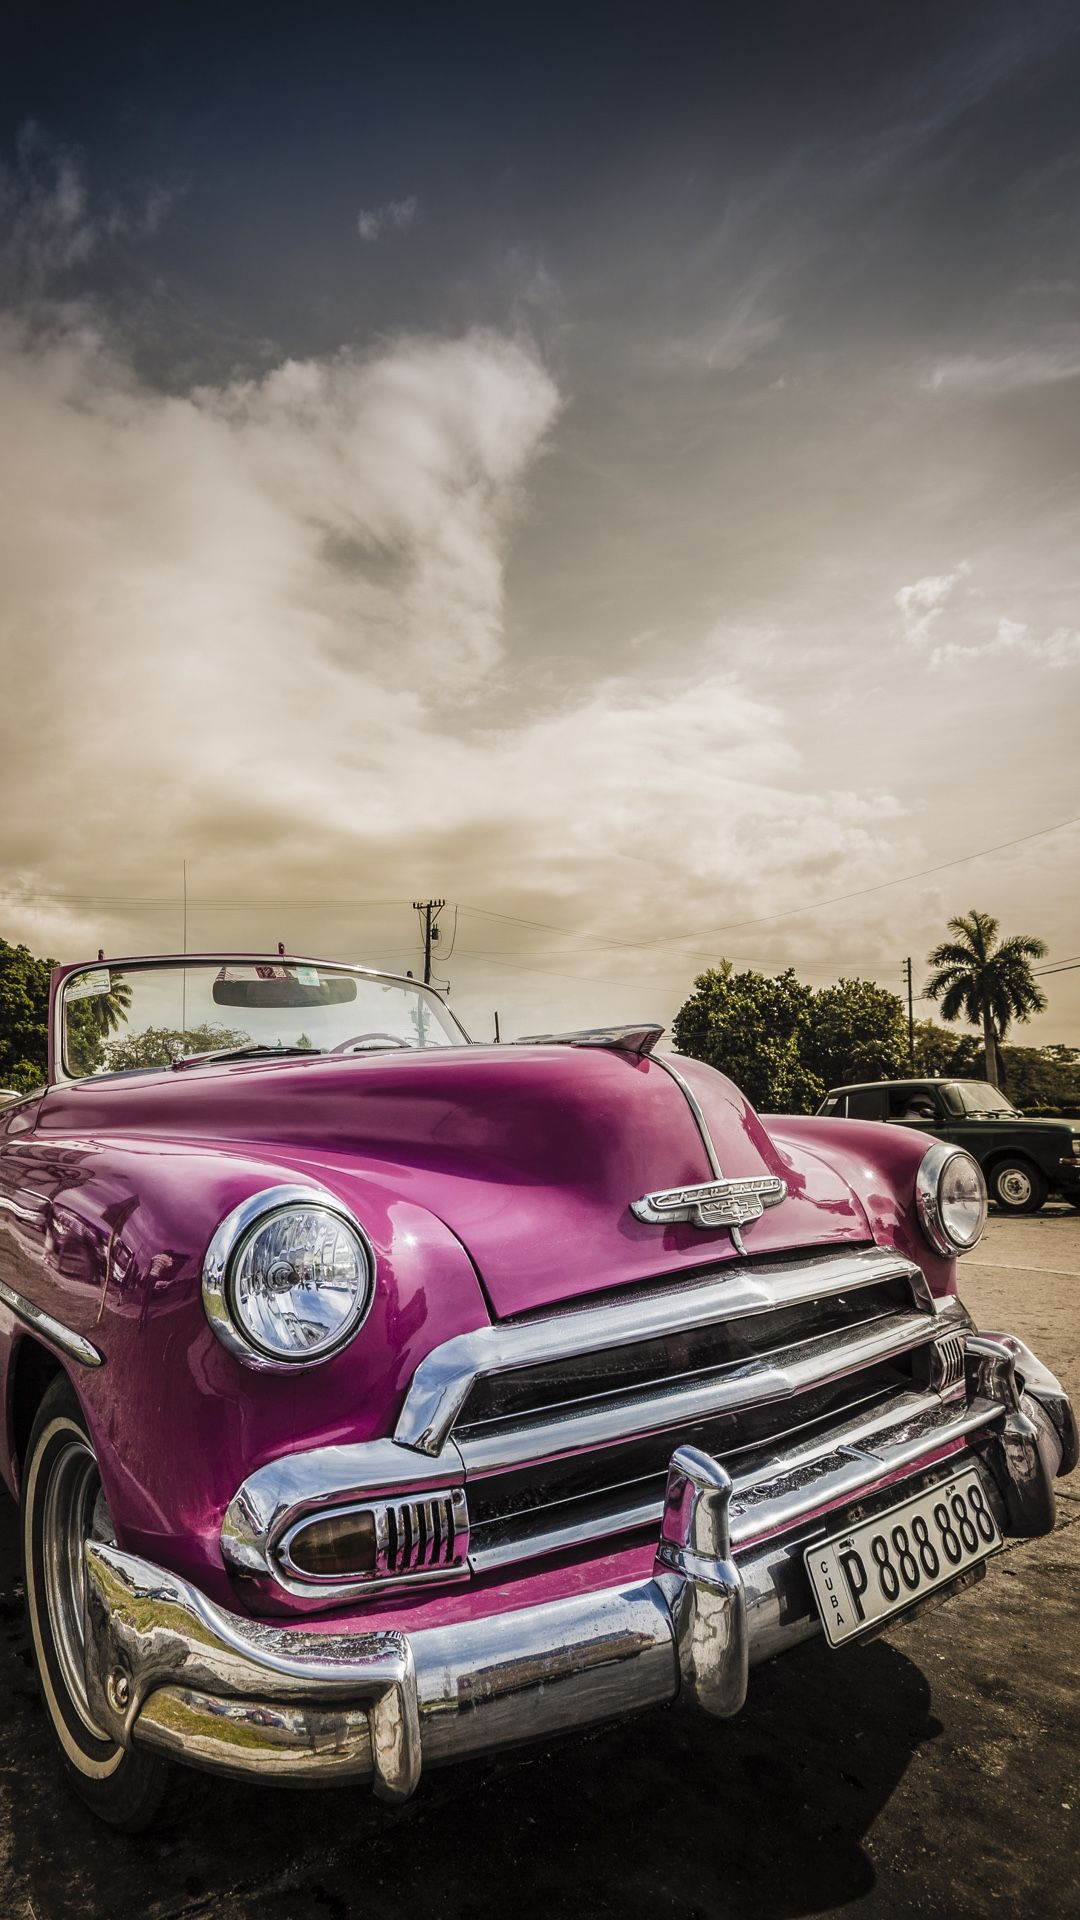 Retro Car Wallpaper For Your Iphone 6 From Everpix In 2019